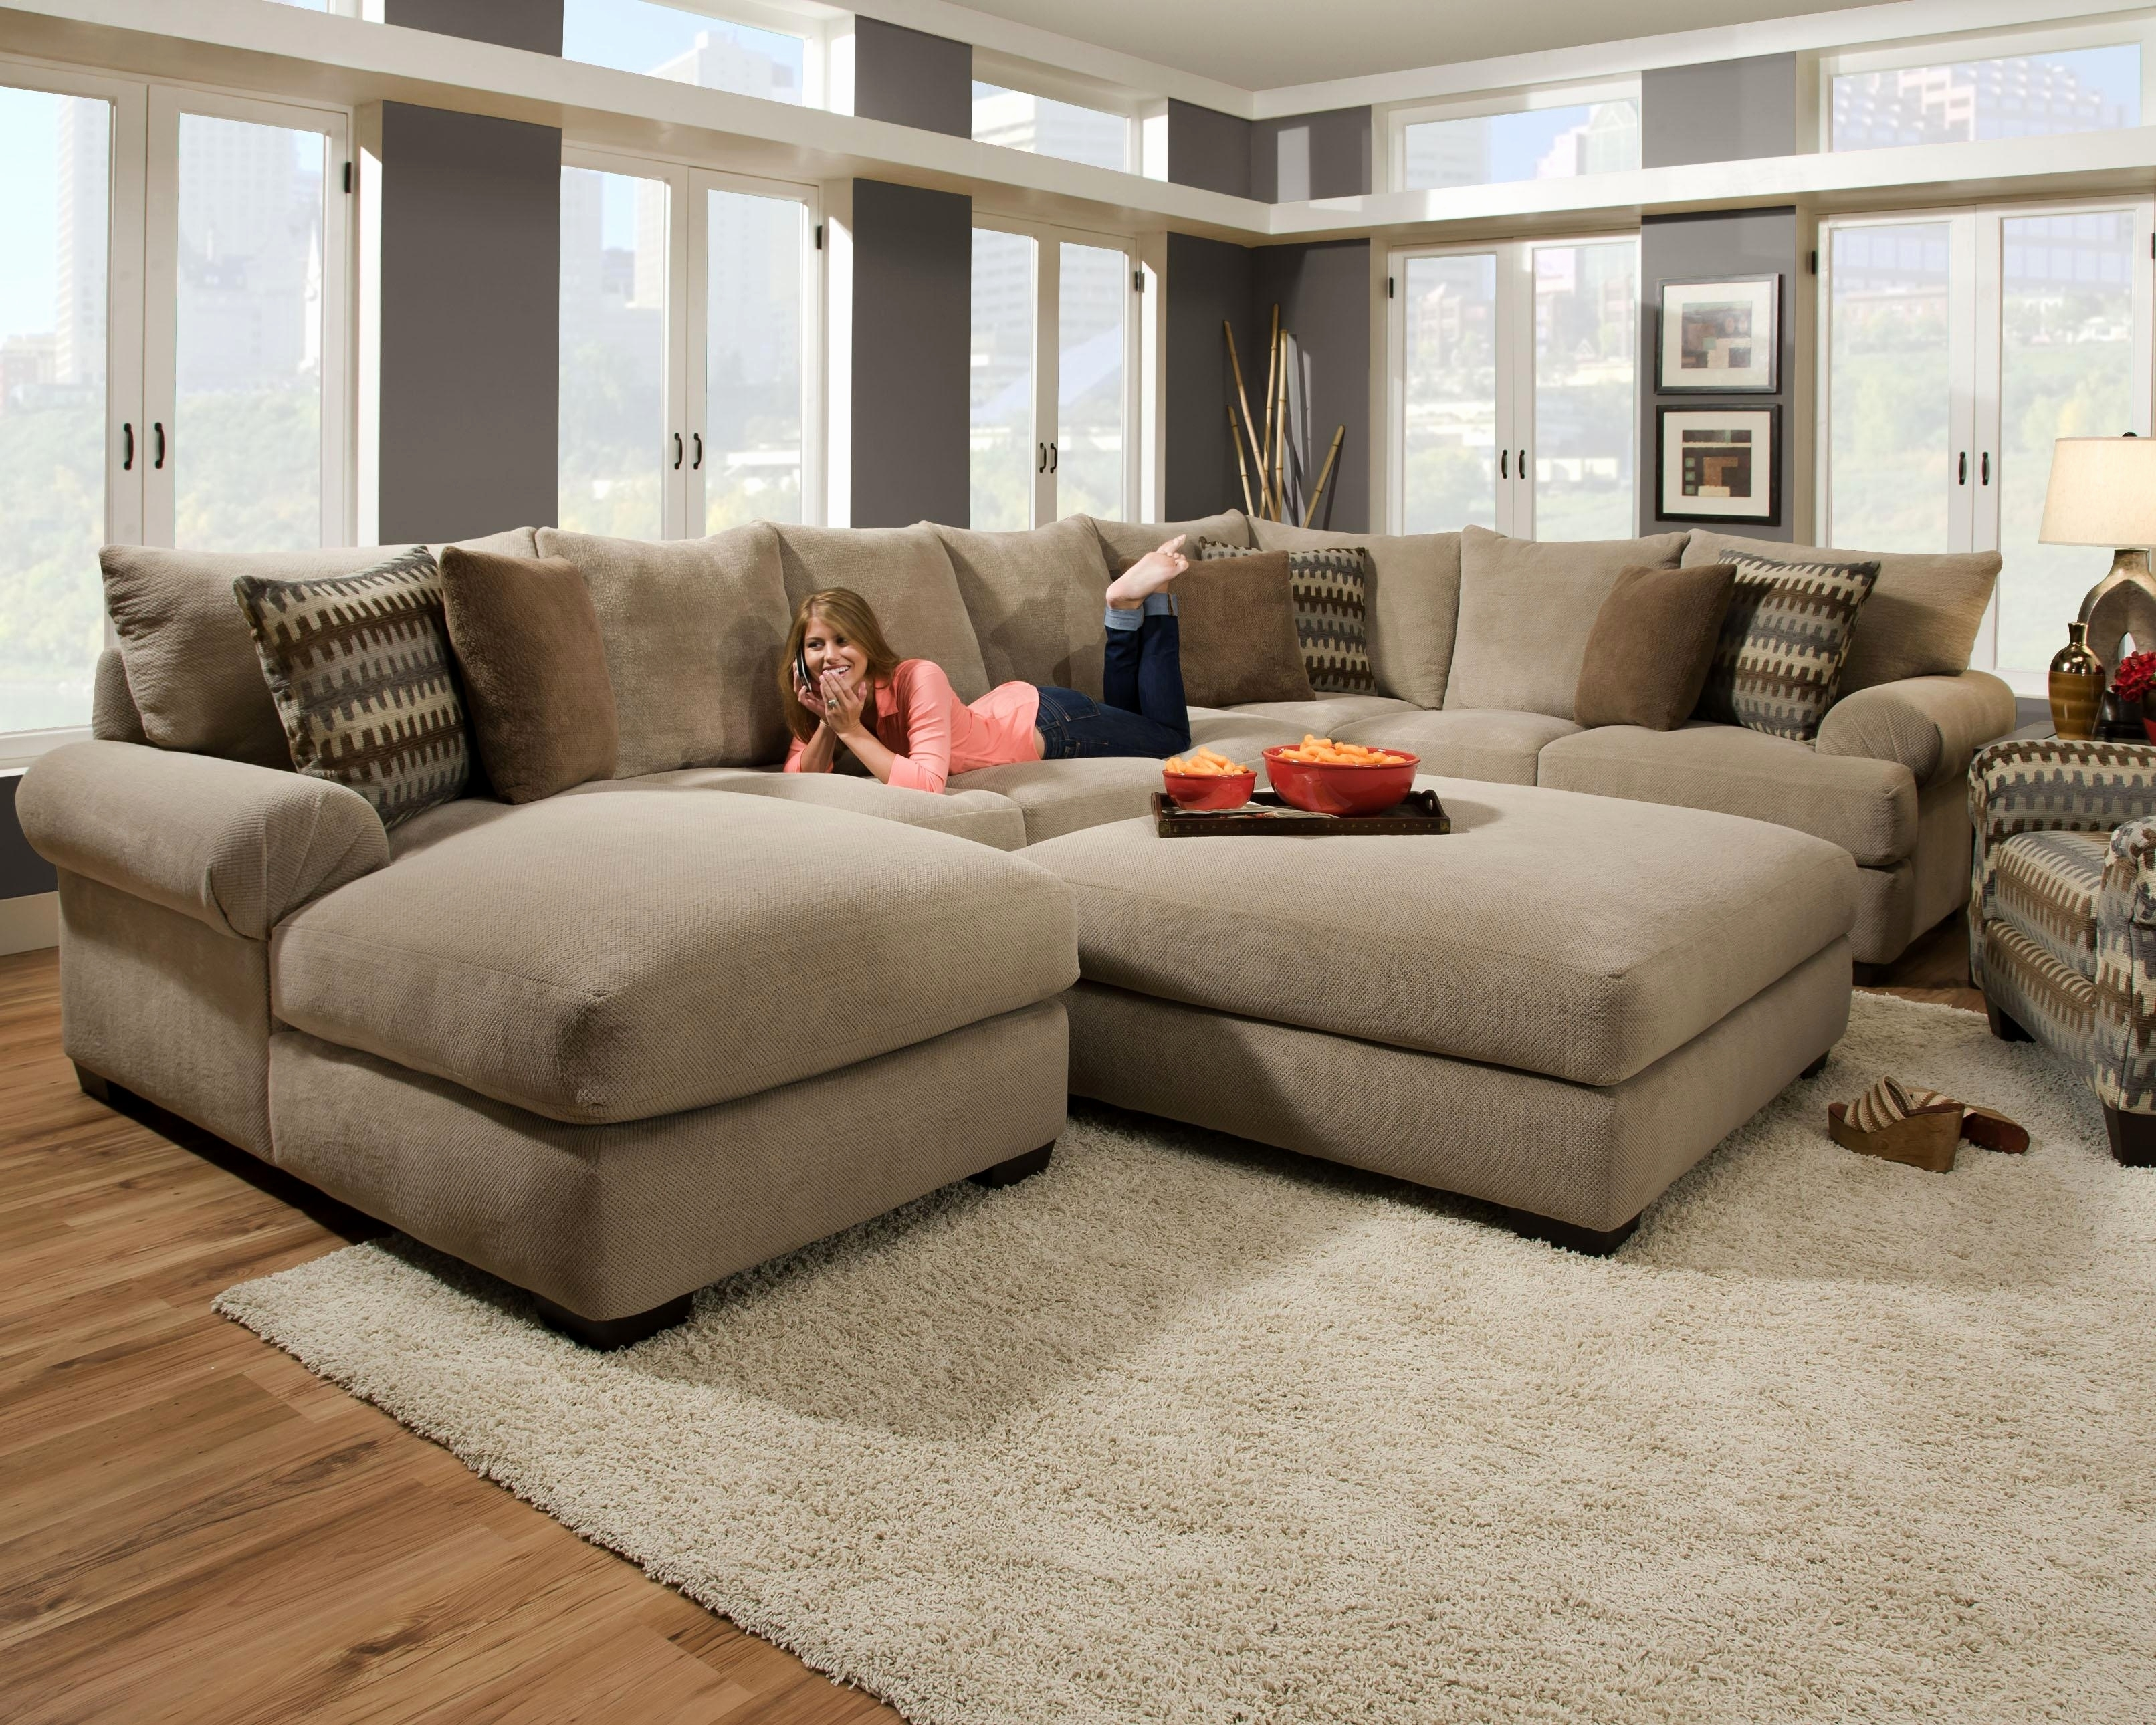 Unique Deep Seated Sectional Sofa 2018 – Couches And Sofas Ideas Within Deep Seating Sectional Sofas (Image 10 of 10)